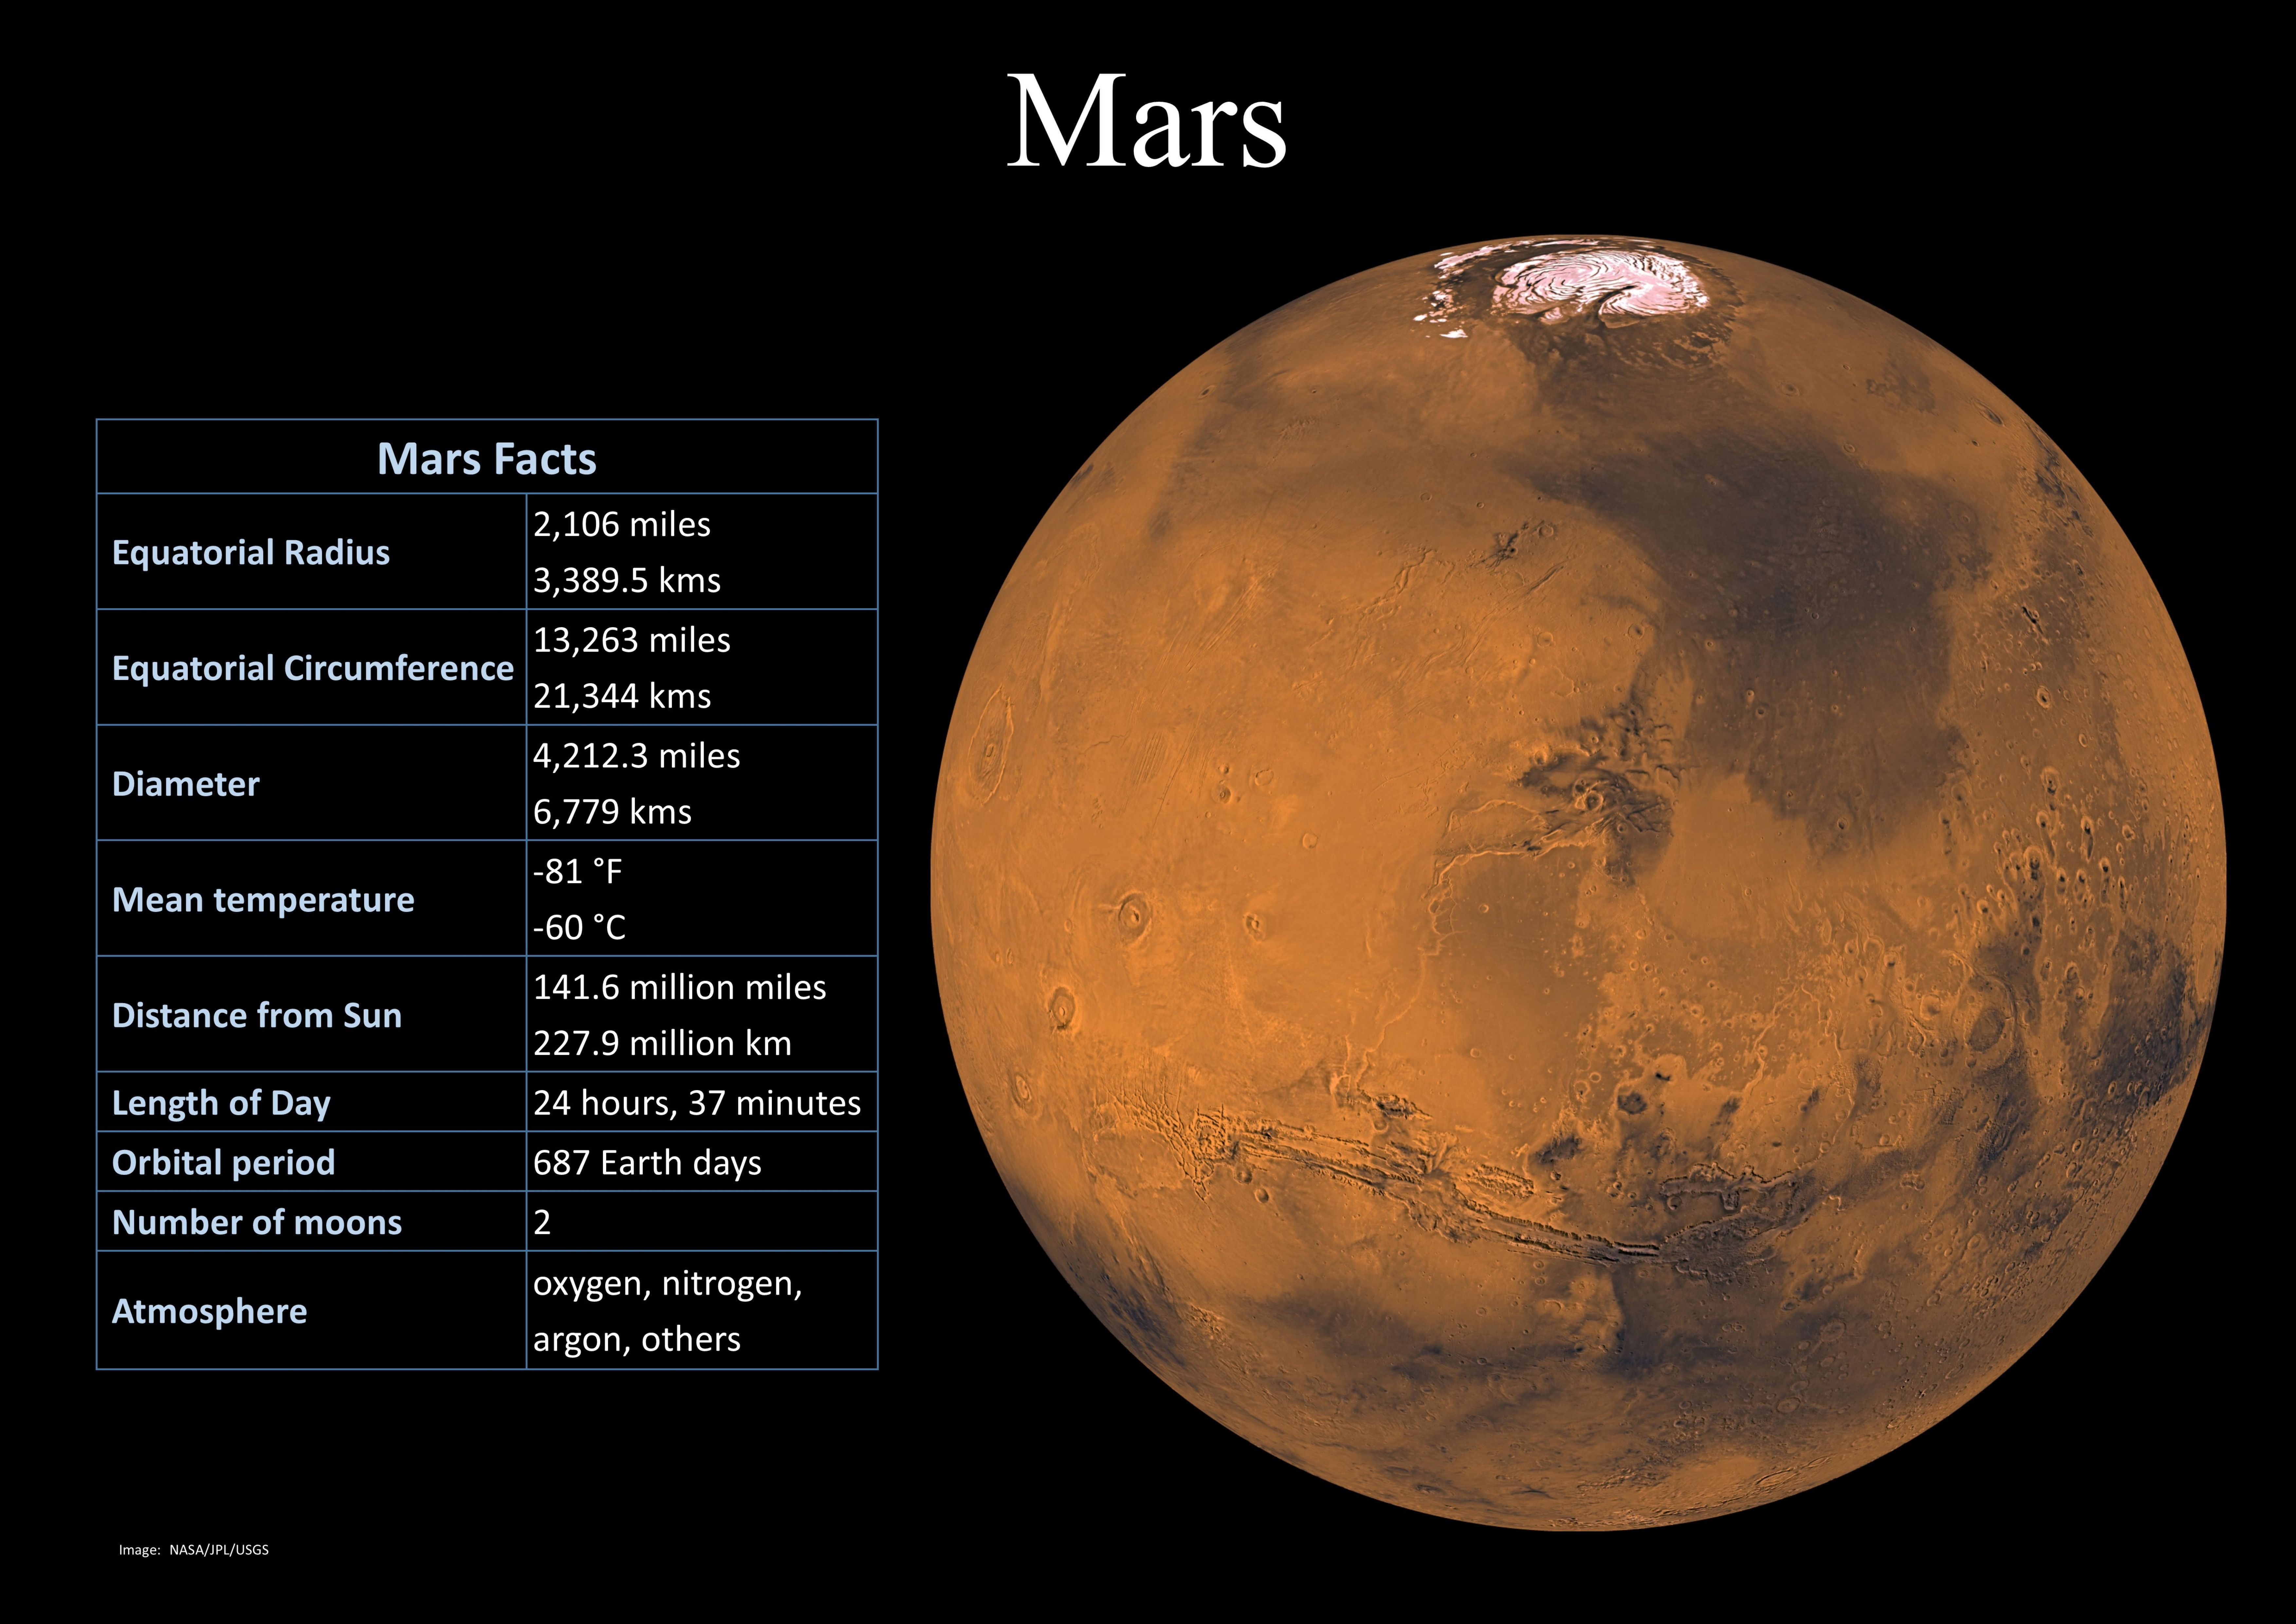 Pin By Elisha Robyn On Space And Astronomy Mars Facts Astronomy Science Mars